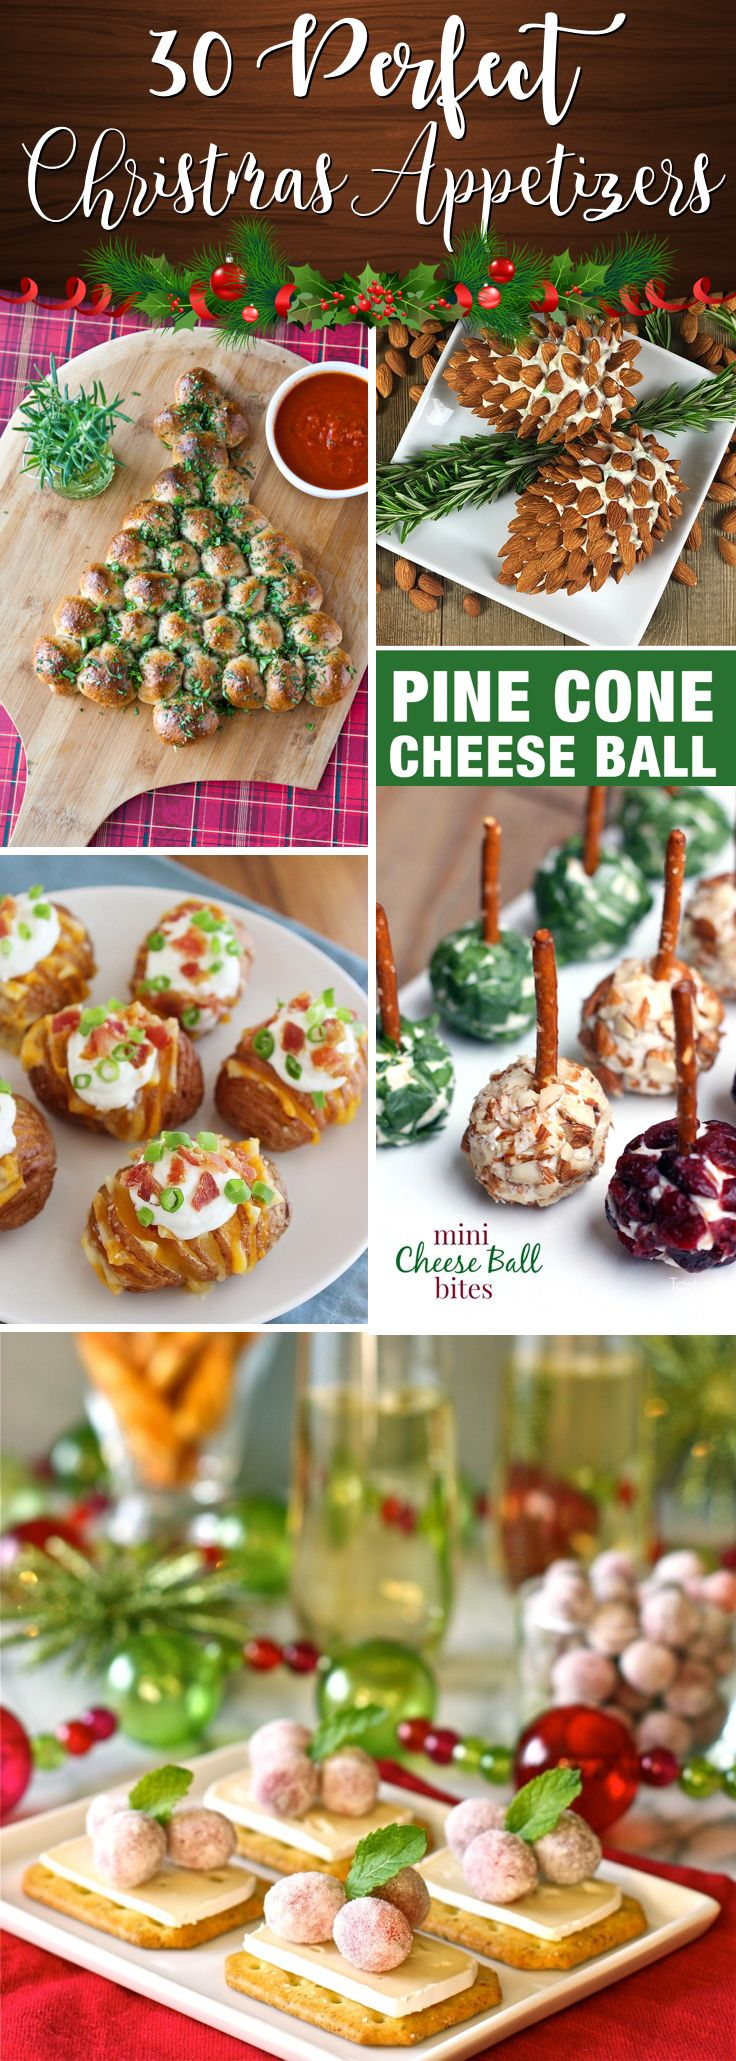 30 Mind-Blowing Recipes for Whipping Up Yummy Appetizers for Christmas – Cute DIY Projects